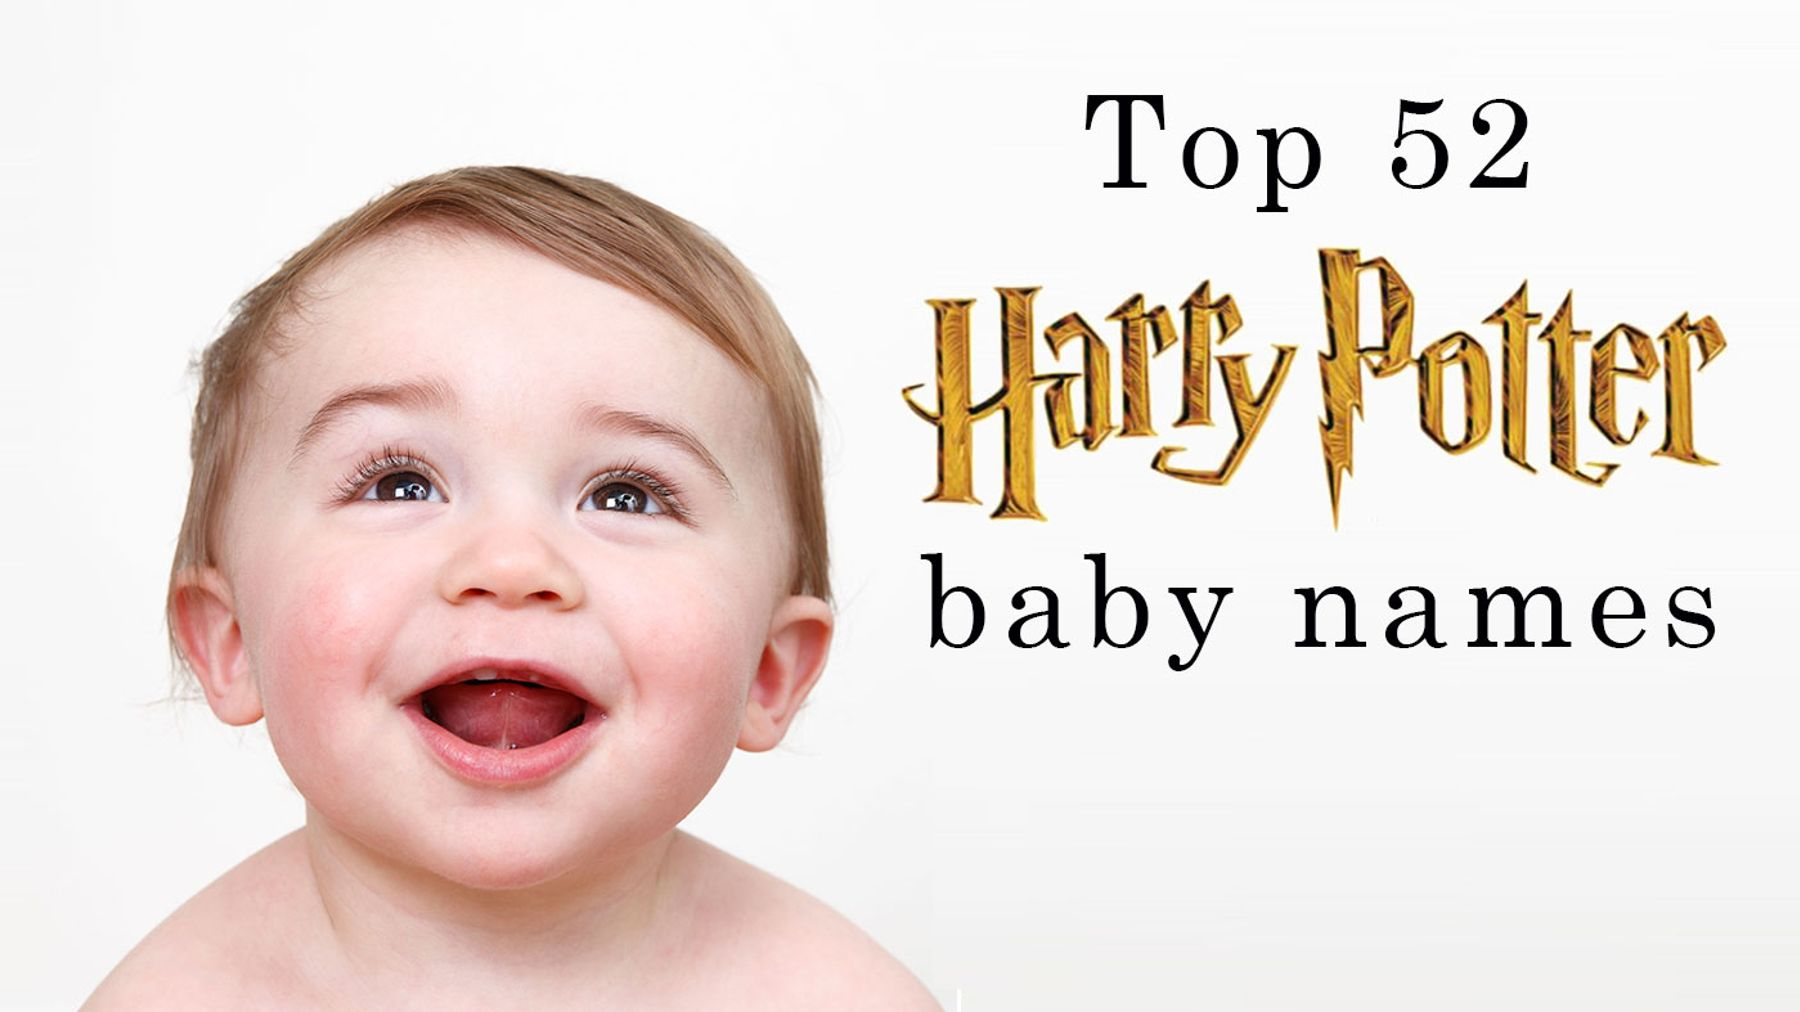 Baby name inspiration: Top 52 Harry Potter baby names - and their